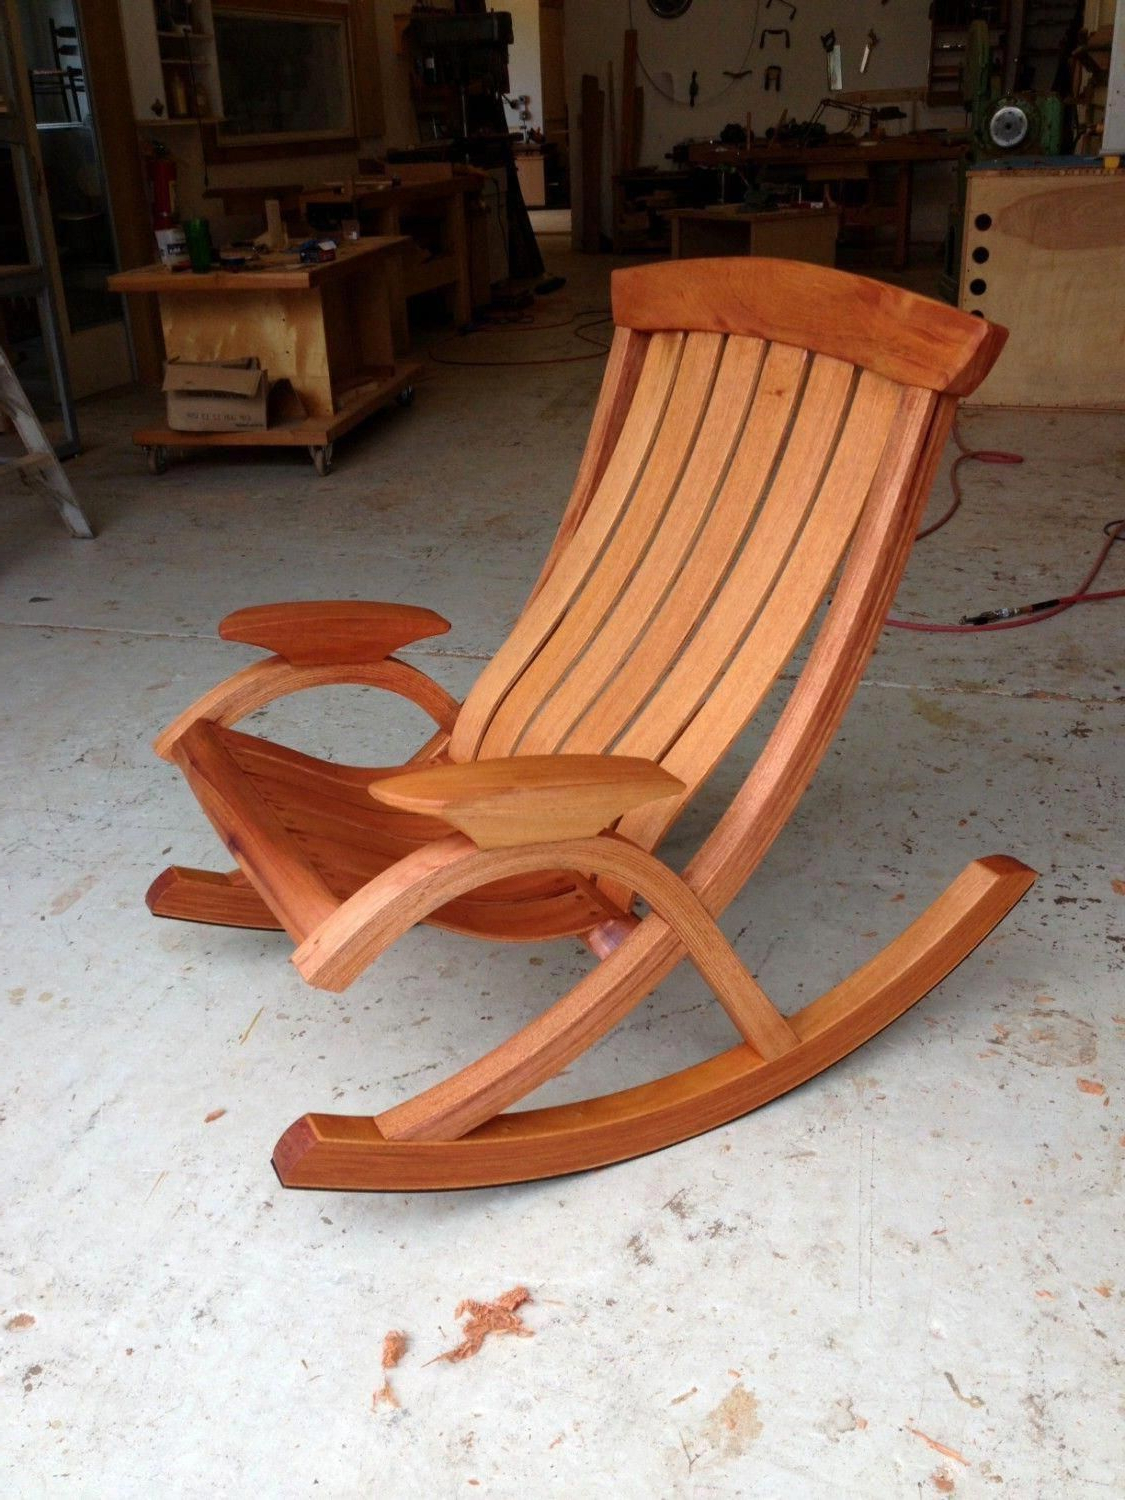 Latest Amazonia Copacabana Wood Swing Chairs Inside Pin On Wood Working Ideas (View 14 of 25)